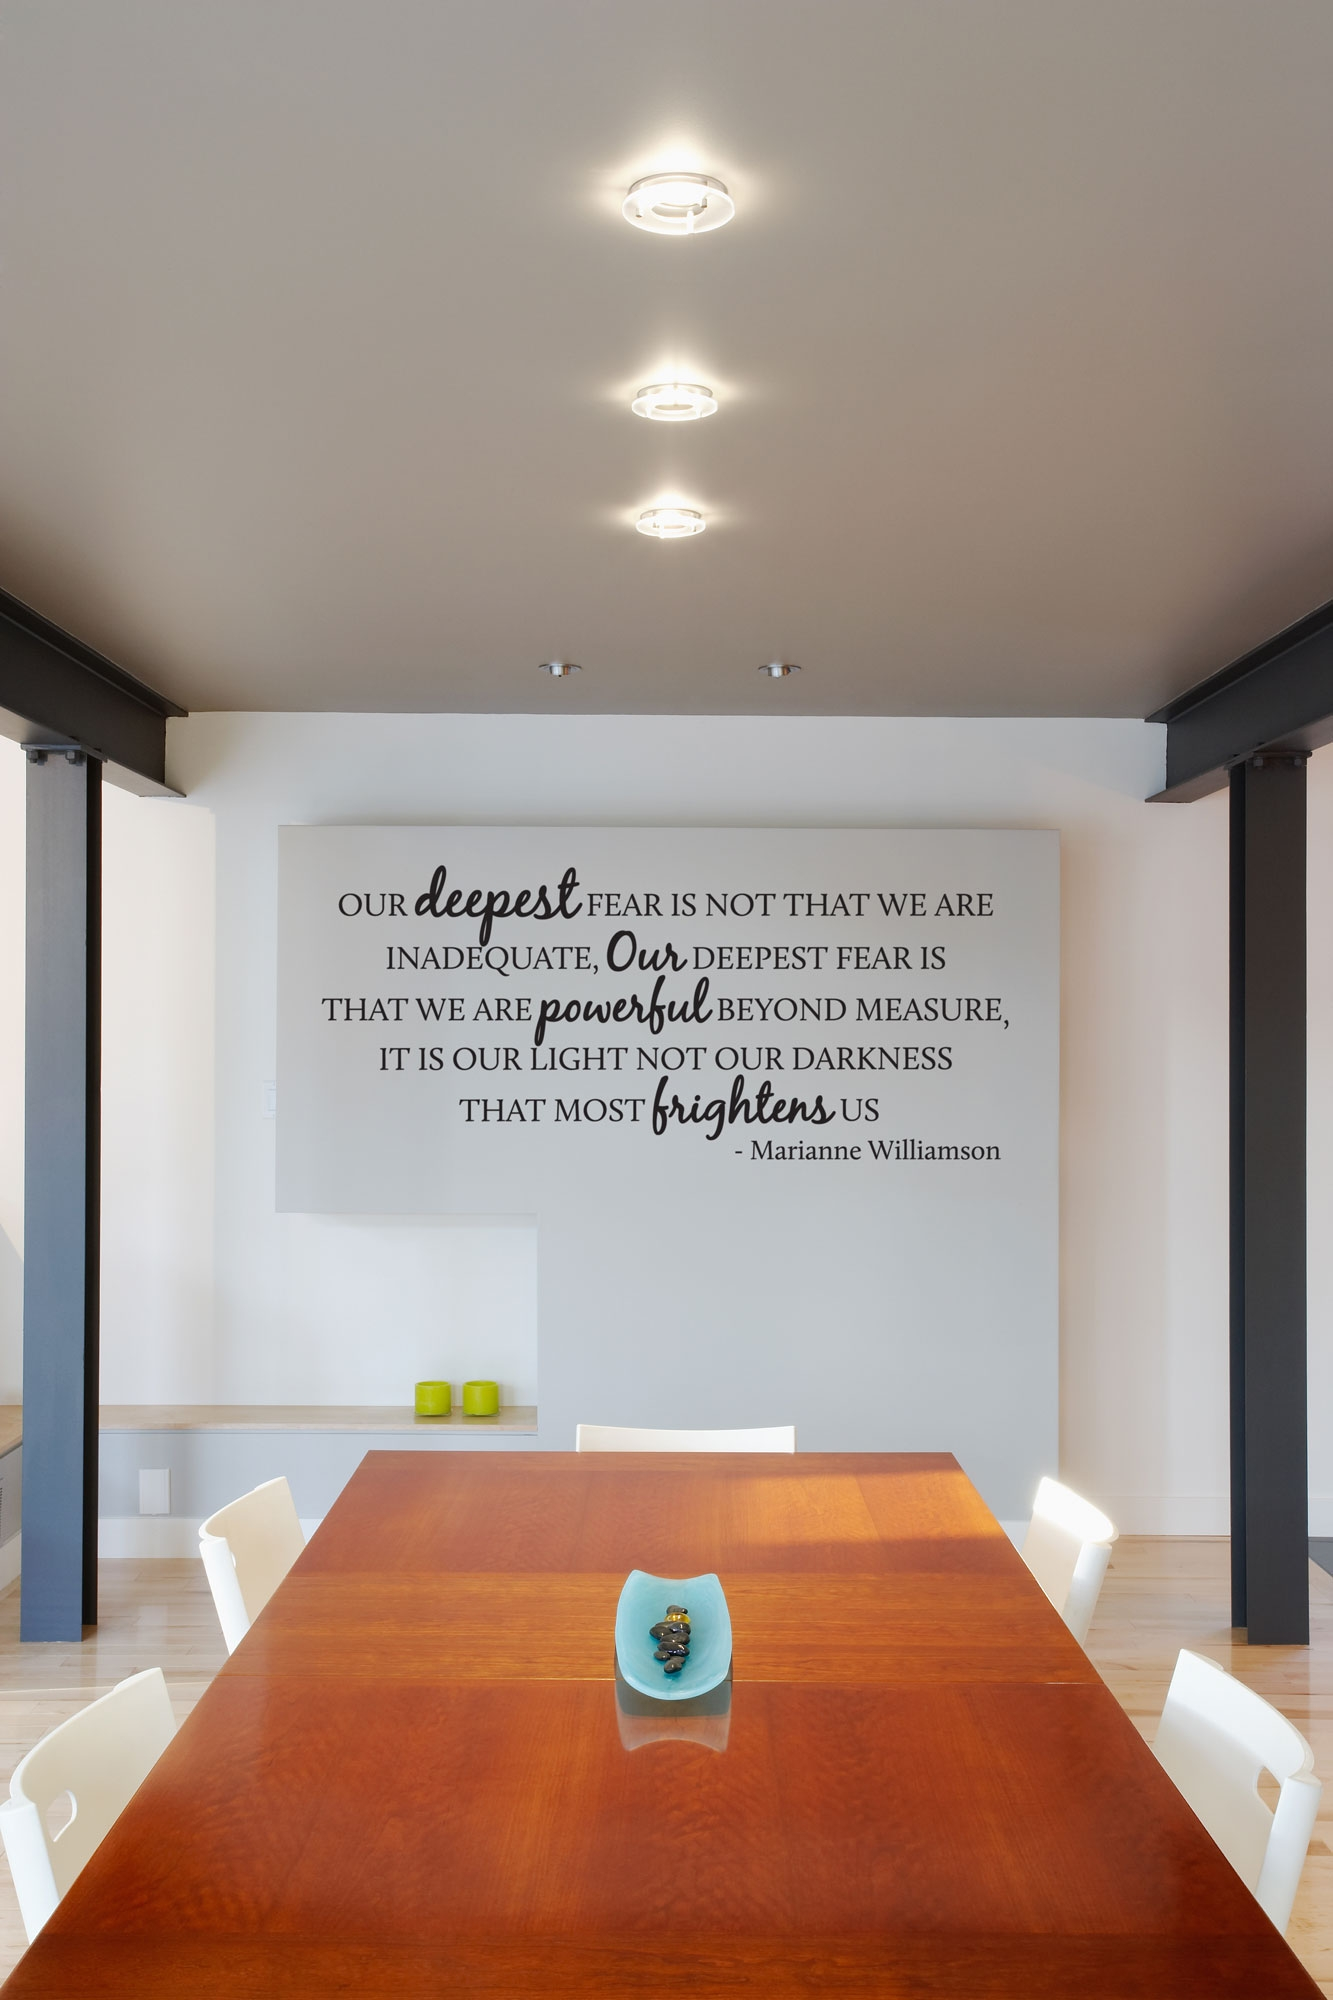 OUR DEEPEST FEAR IS NOT THAT WE ARE INADEQUATE INSPIRATIONAL QUOTE VINYL DECAL - OZDECO T/S Polonaiz & OUR DEEPEST FEAR IS NOT THAT WE ARE INADEQUATE INSPIRATIONAL QUOTE ...